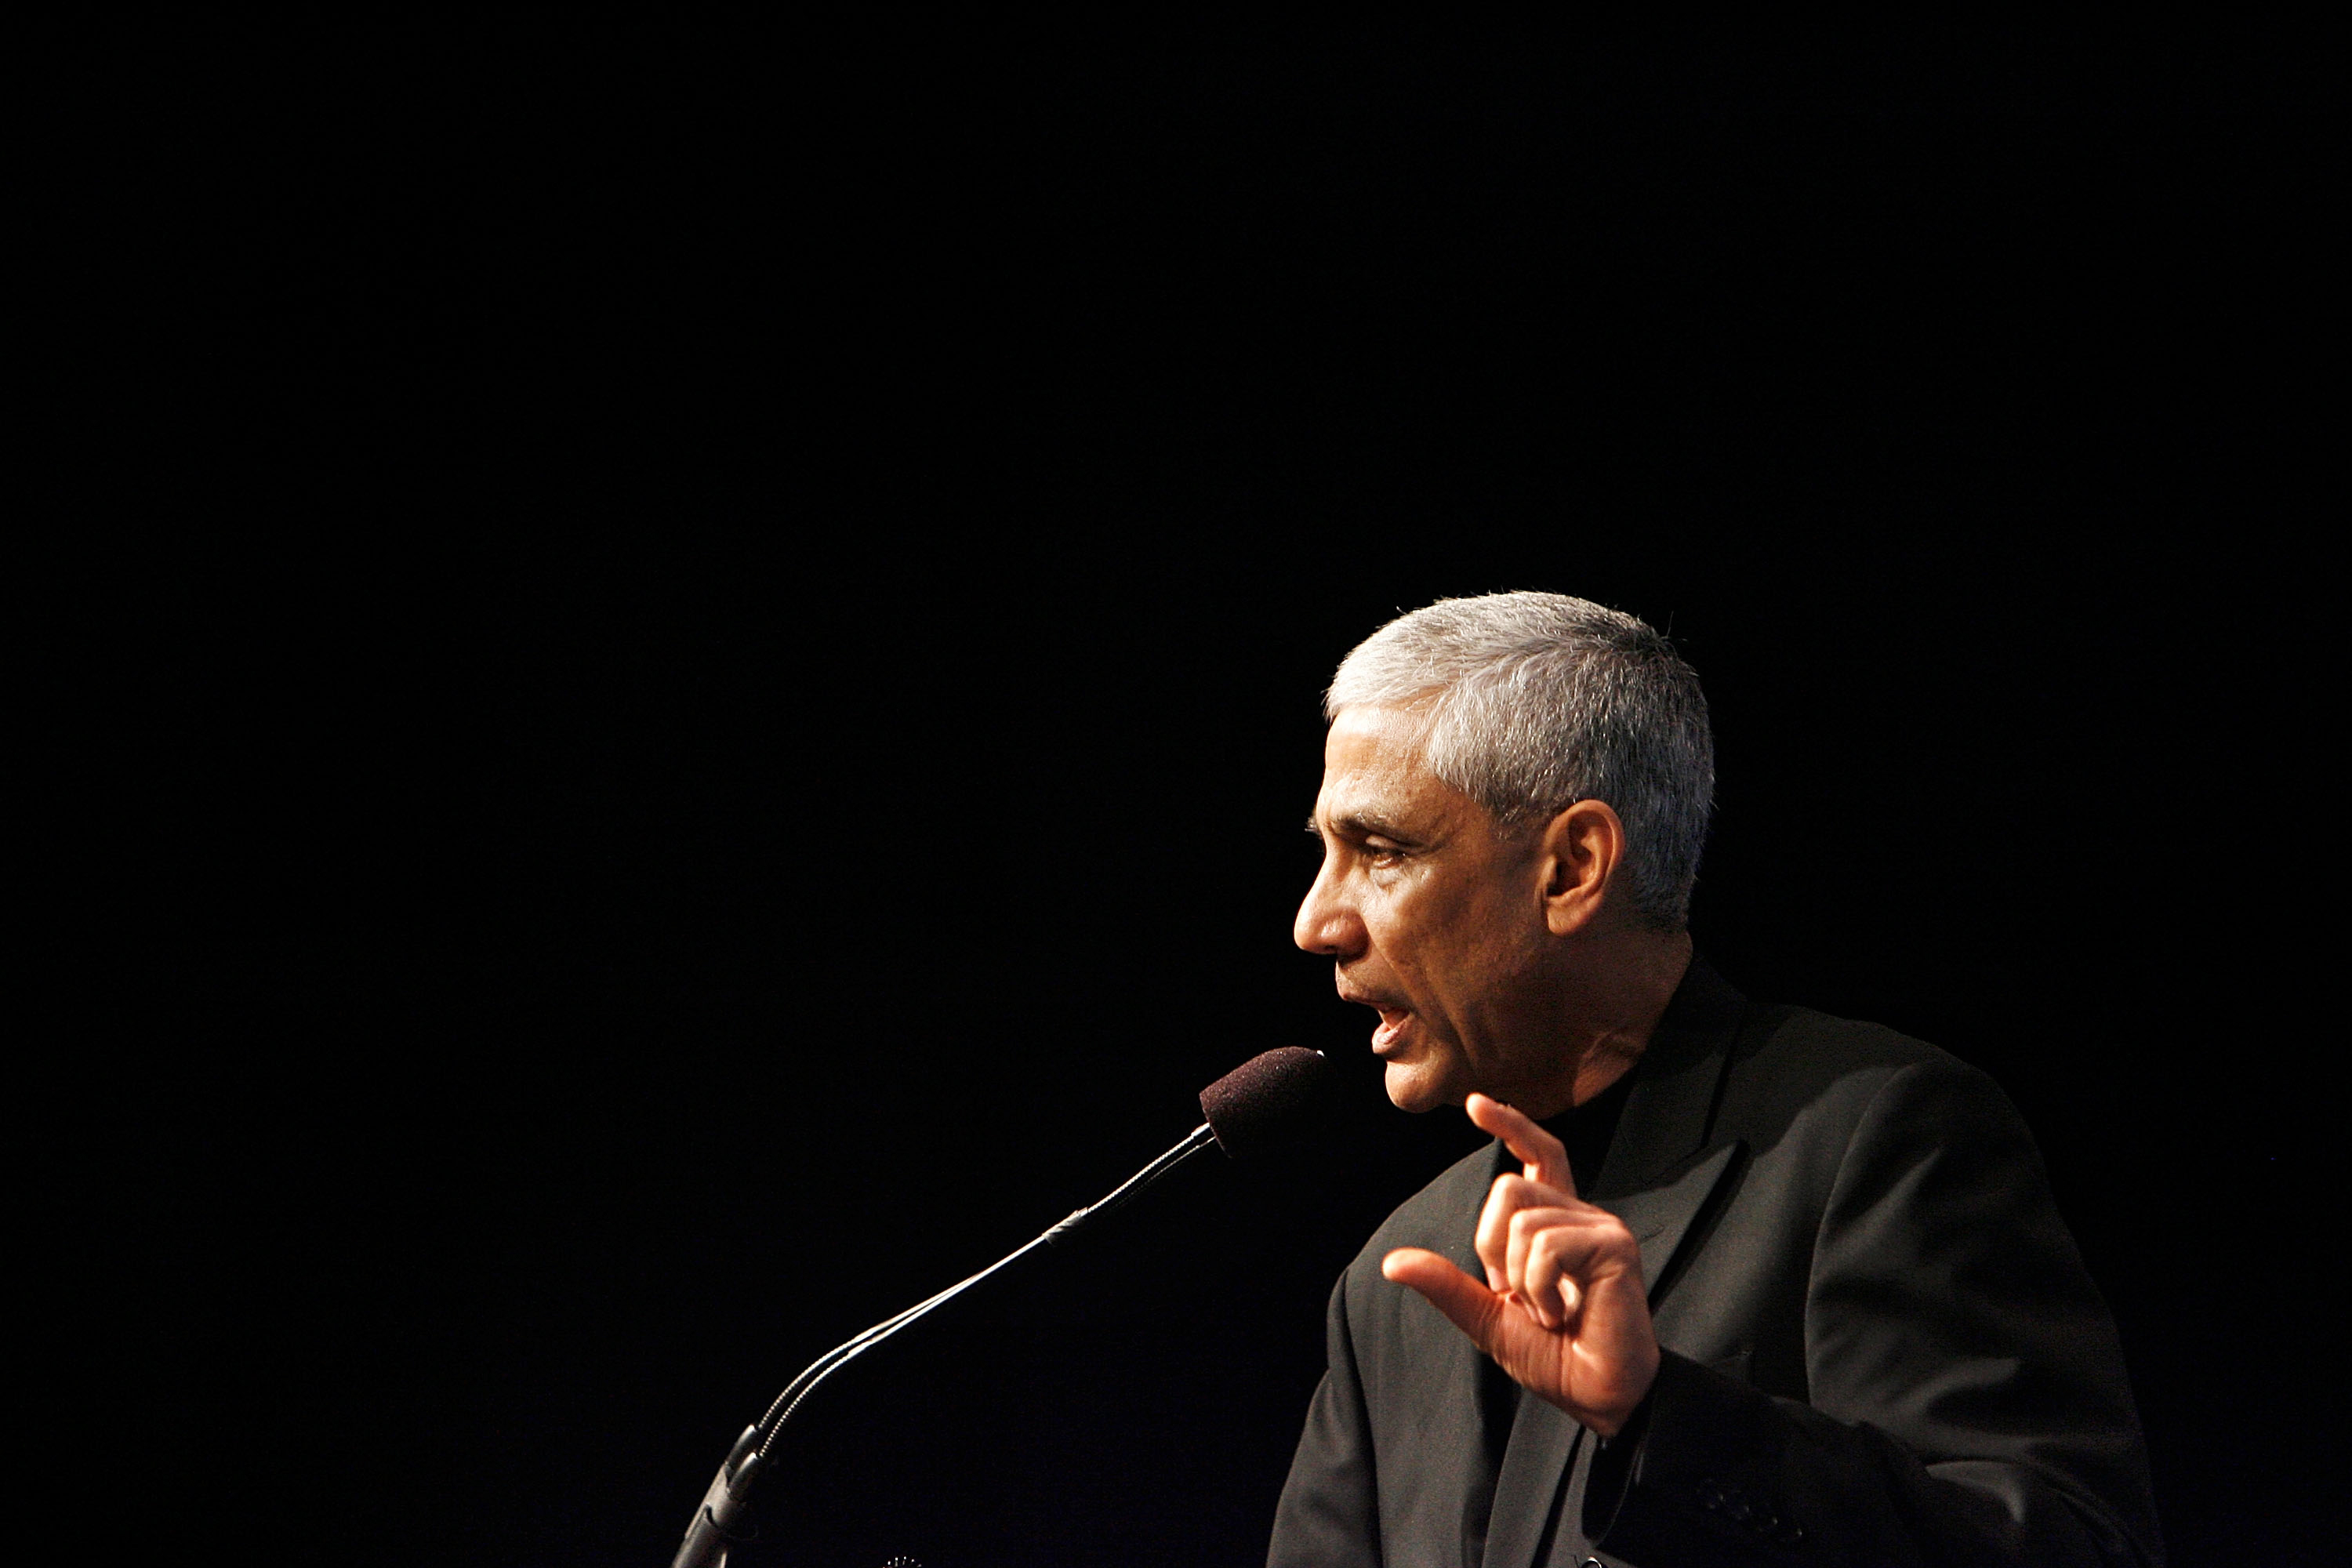 Vinod Khosla speaks at a microphone